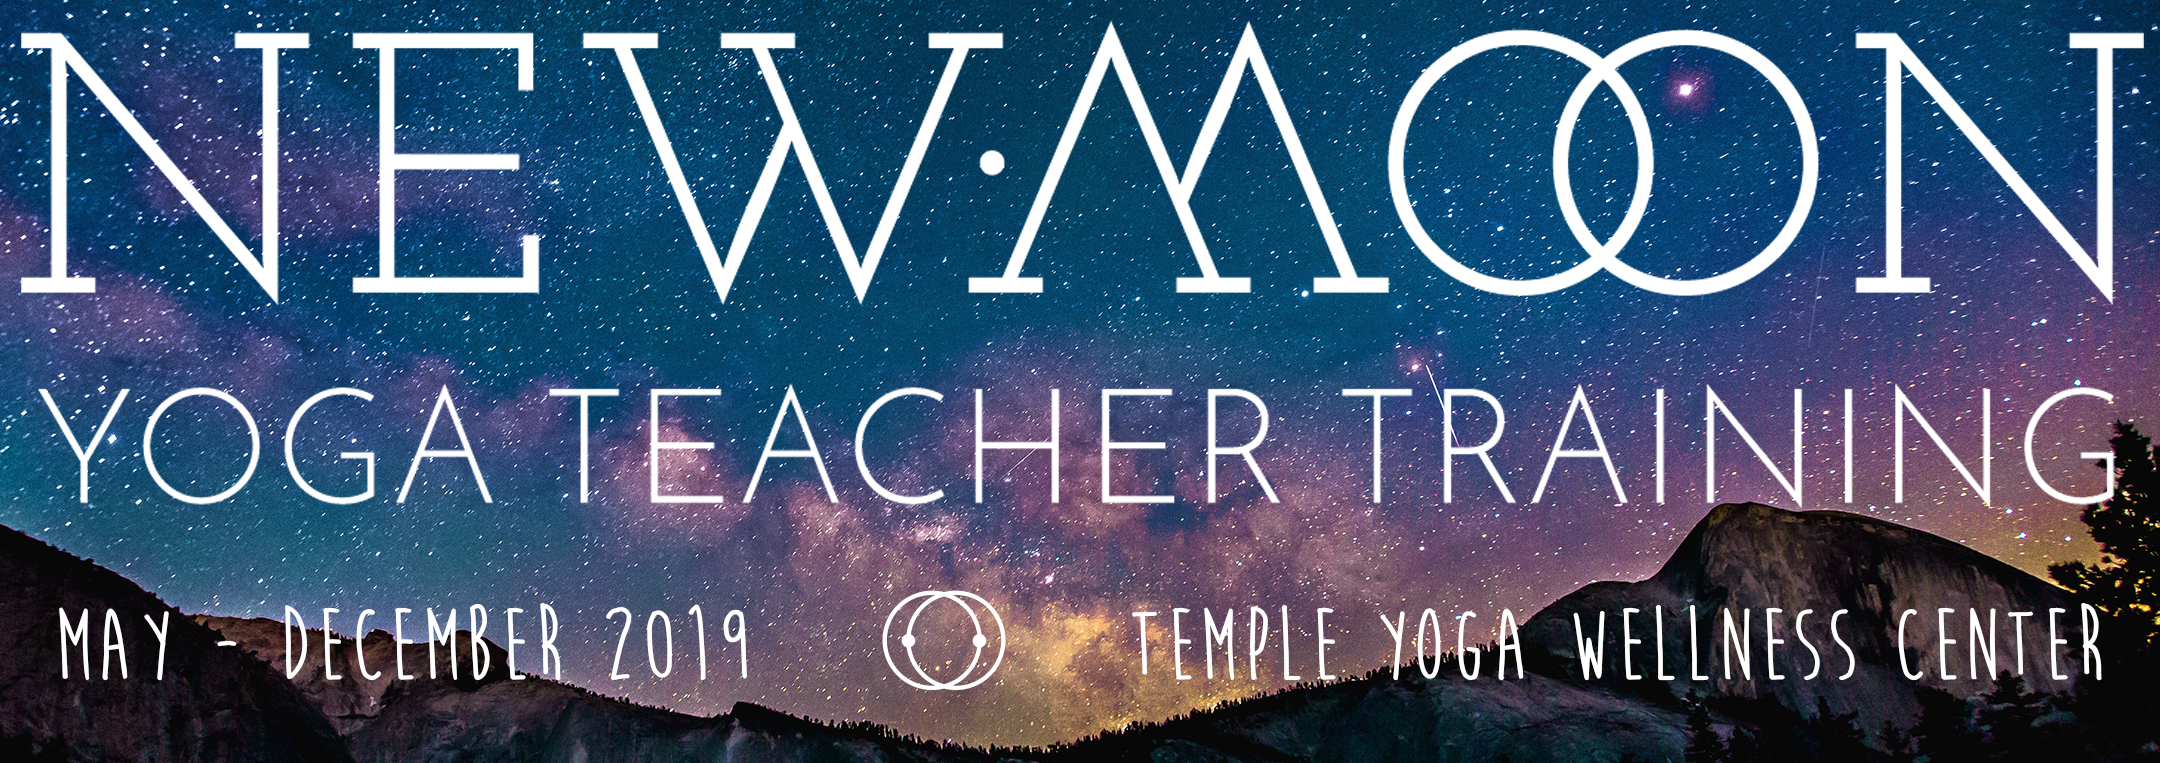 New Moon Yoga Teacher Training.jpg